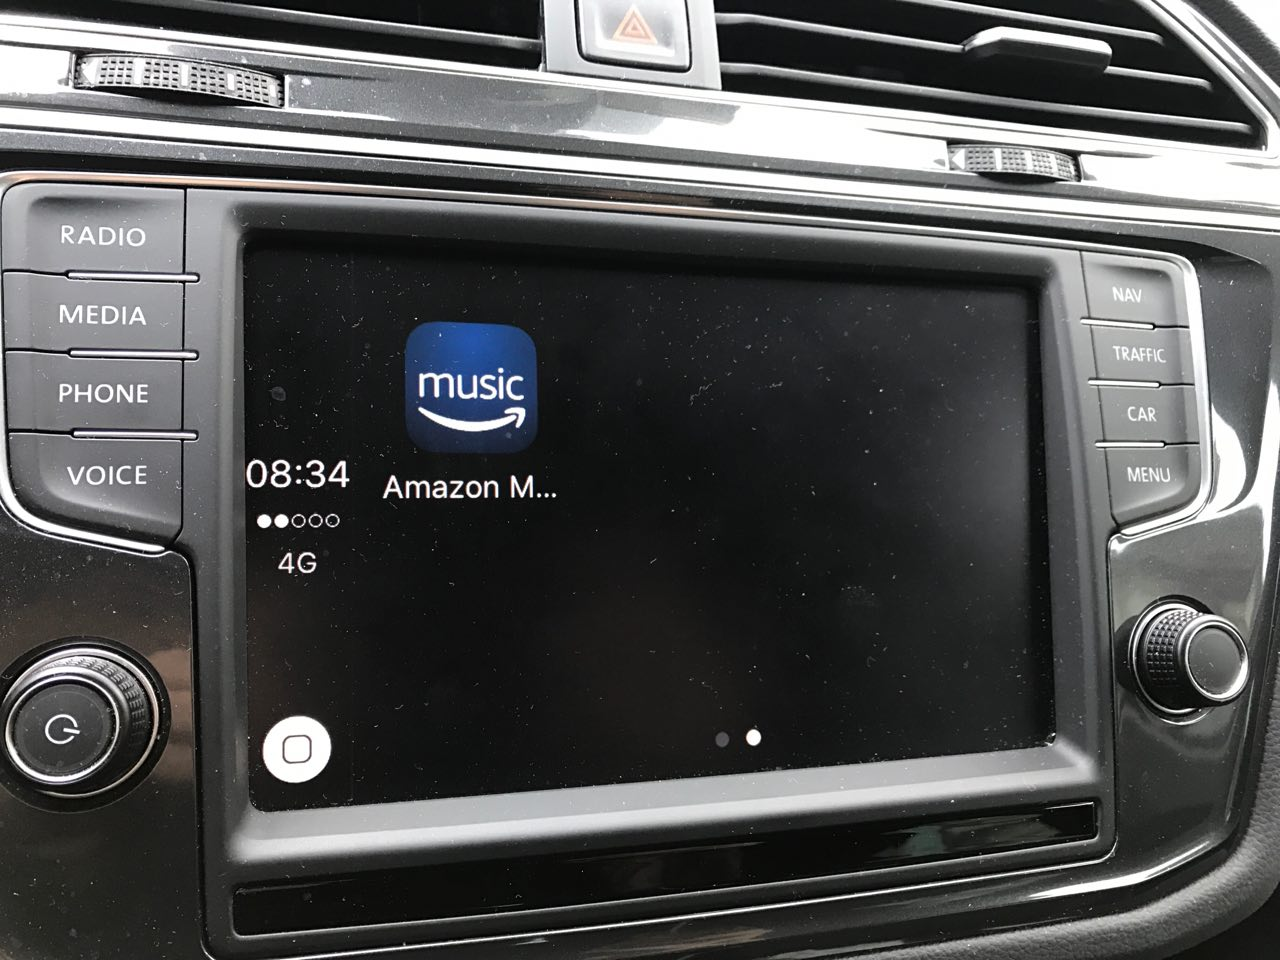 Amazon Music CarPlay